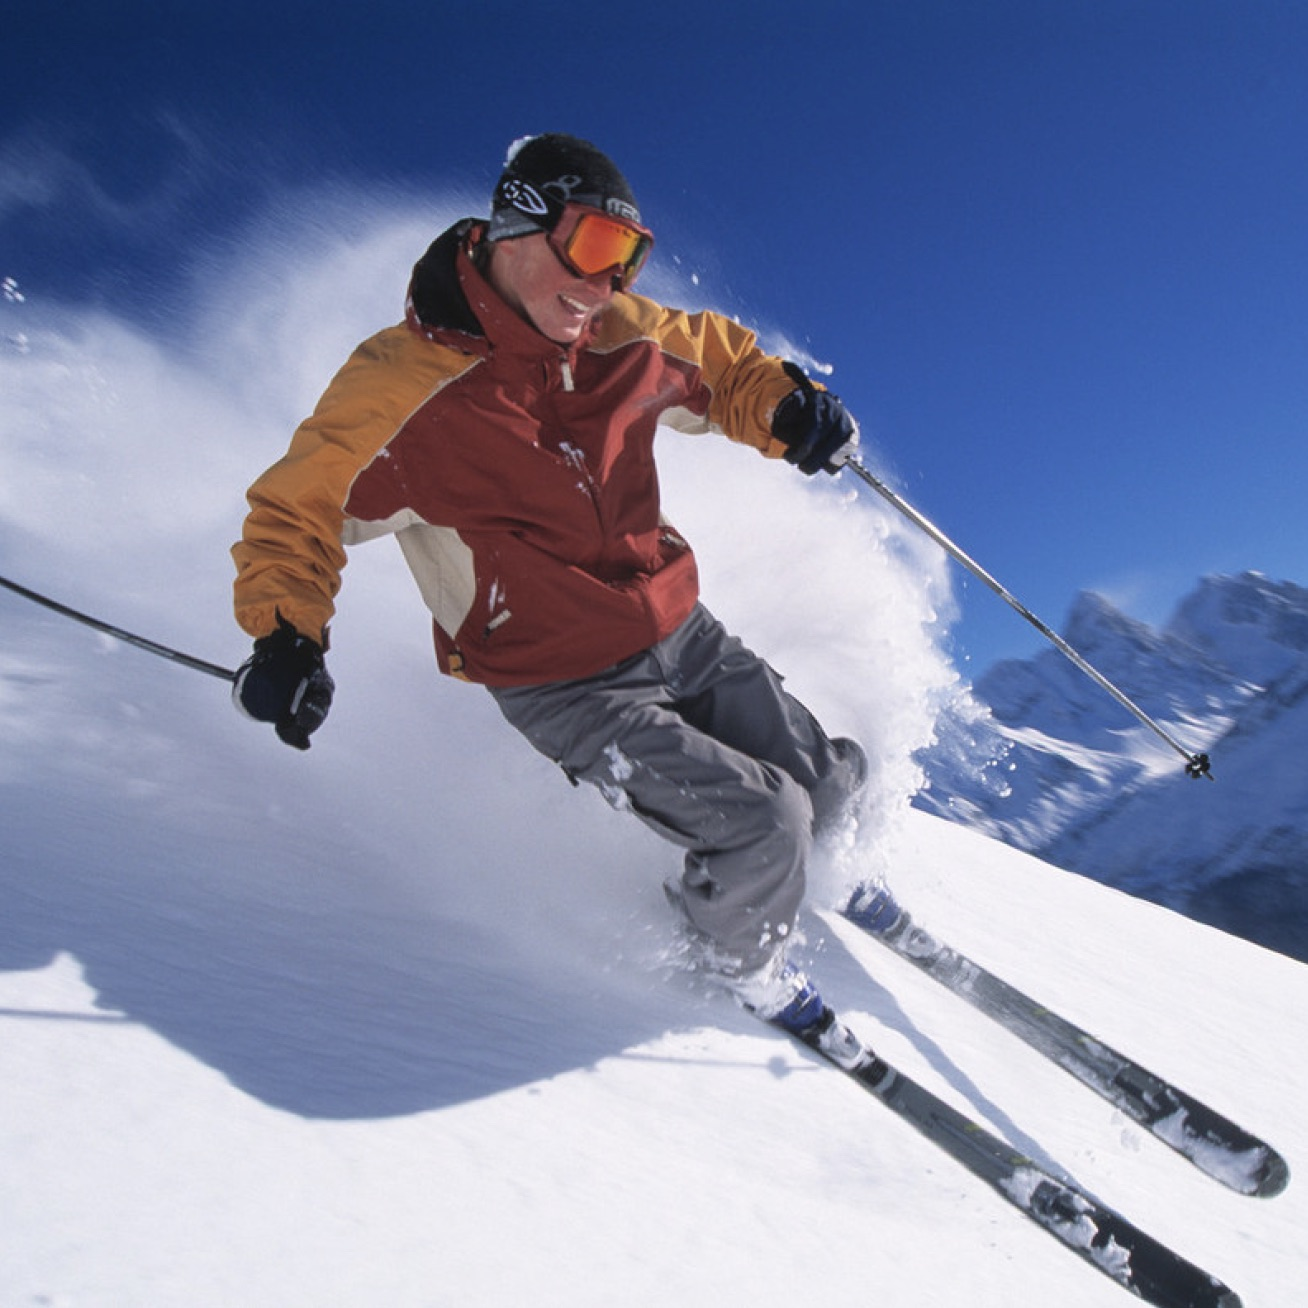 The most common ski injuries include ACL tear, MCL tear, and shoulder dislocation, and we deal with these at Atlanta Sport and Spine Physical Therapy